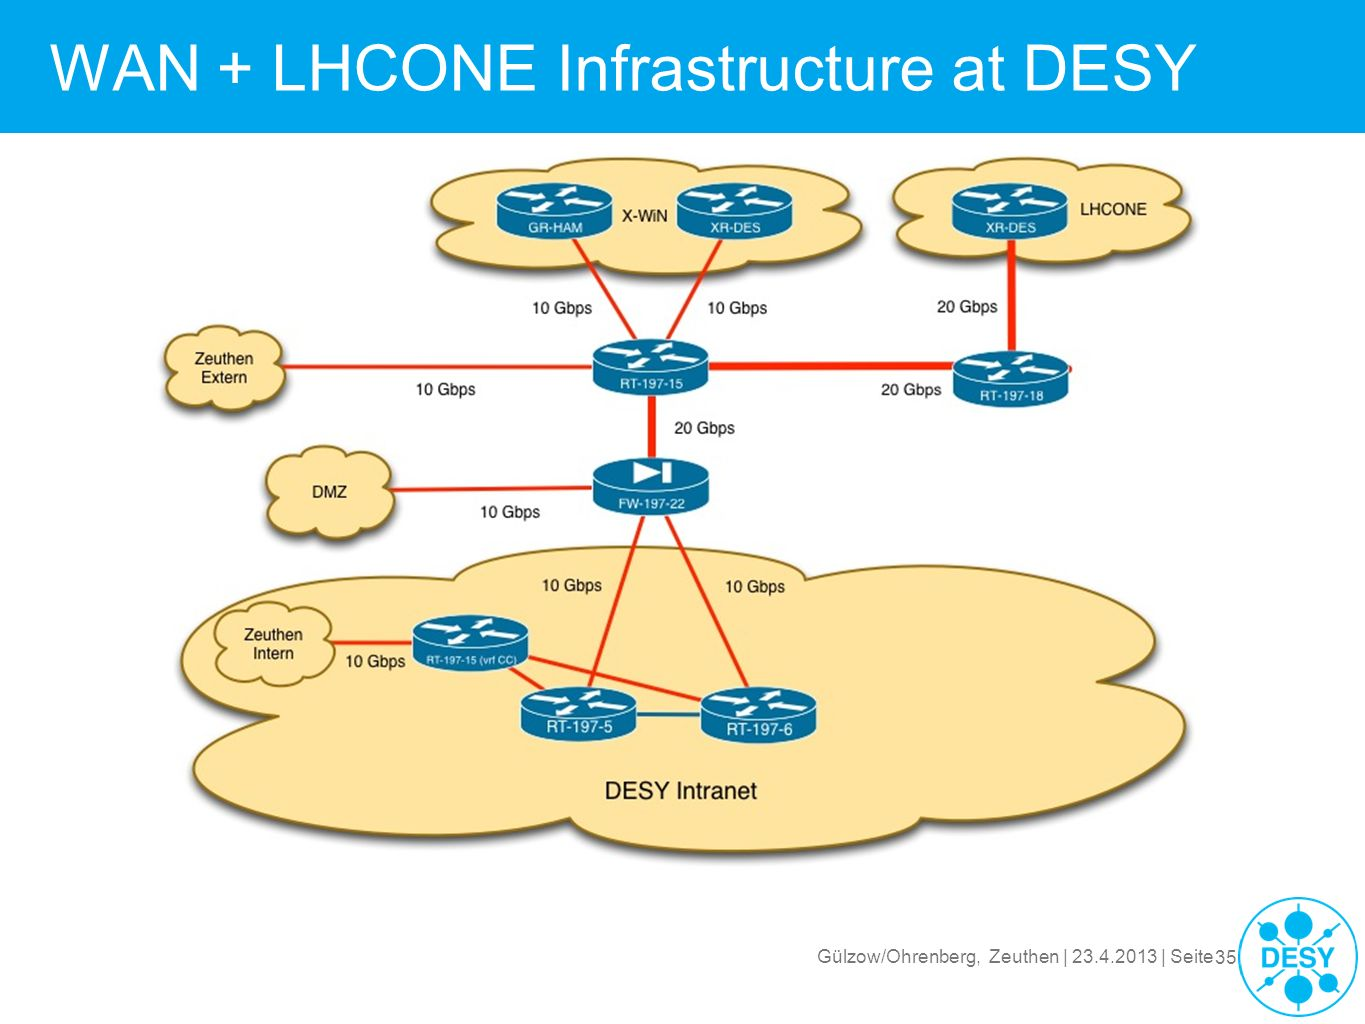 WAN + LHCONE Infrastructure at DESY